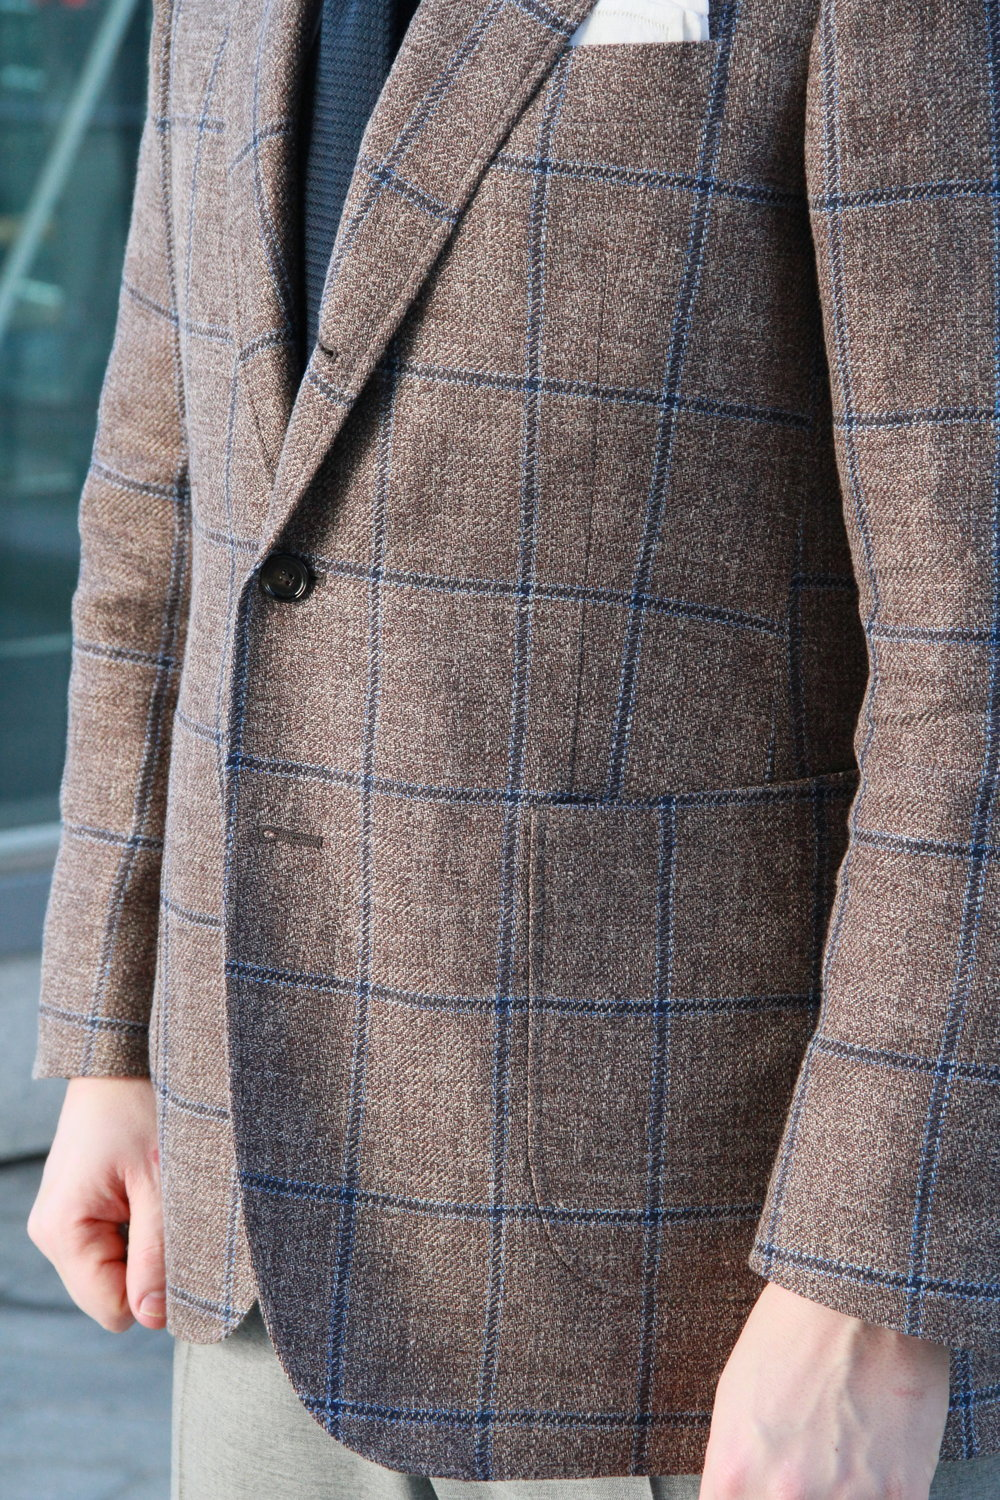 Learn More    Exceptional Bespoke Suits    LEARN MORE